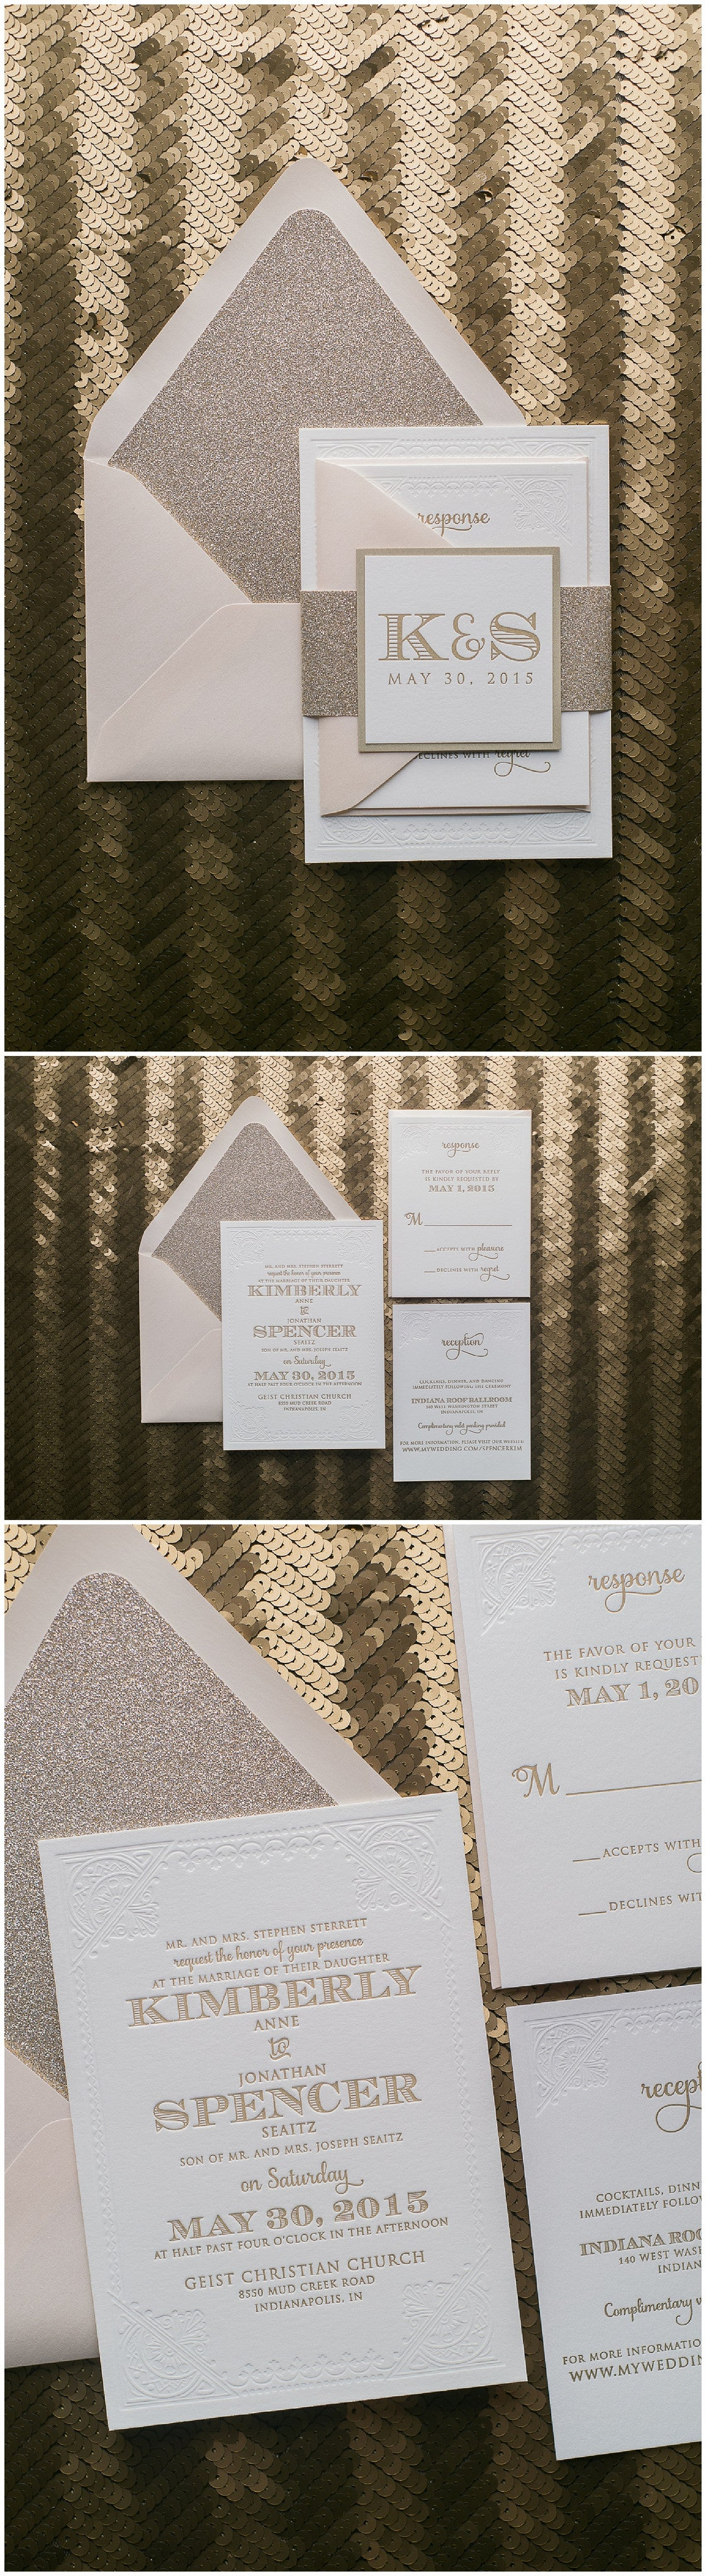 Wedding Invitations, Letterpress, Blind Press, Blush and Gold Wedding Trends, Gold Glitter, Kristin Suite, Just Invite Me